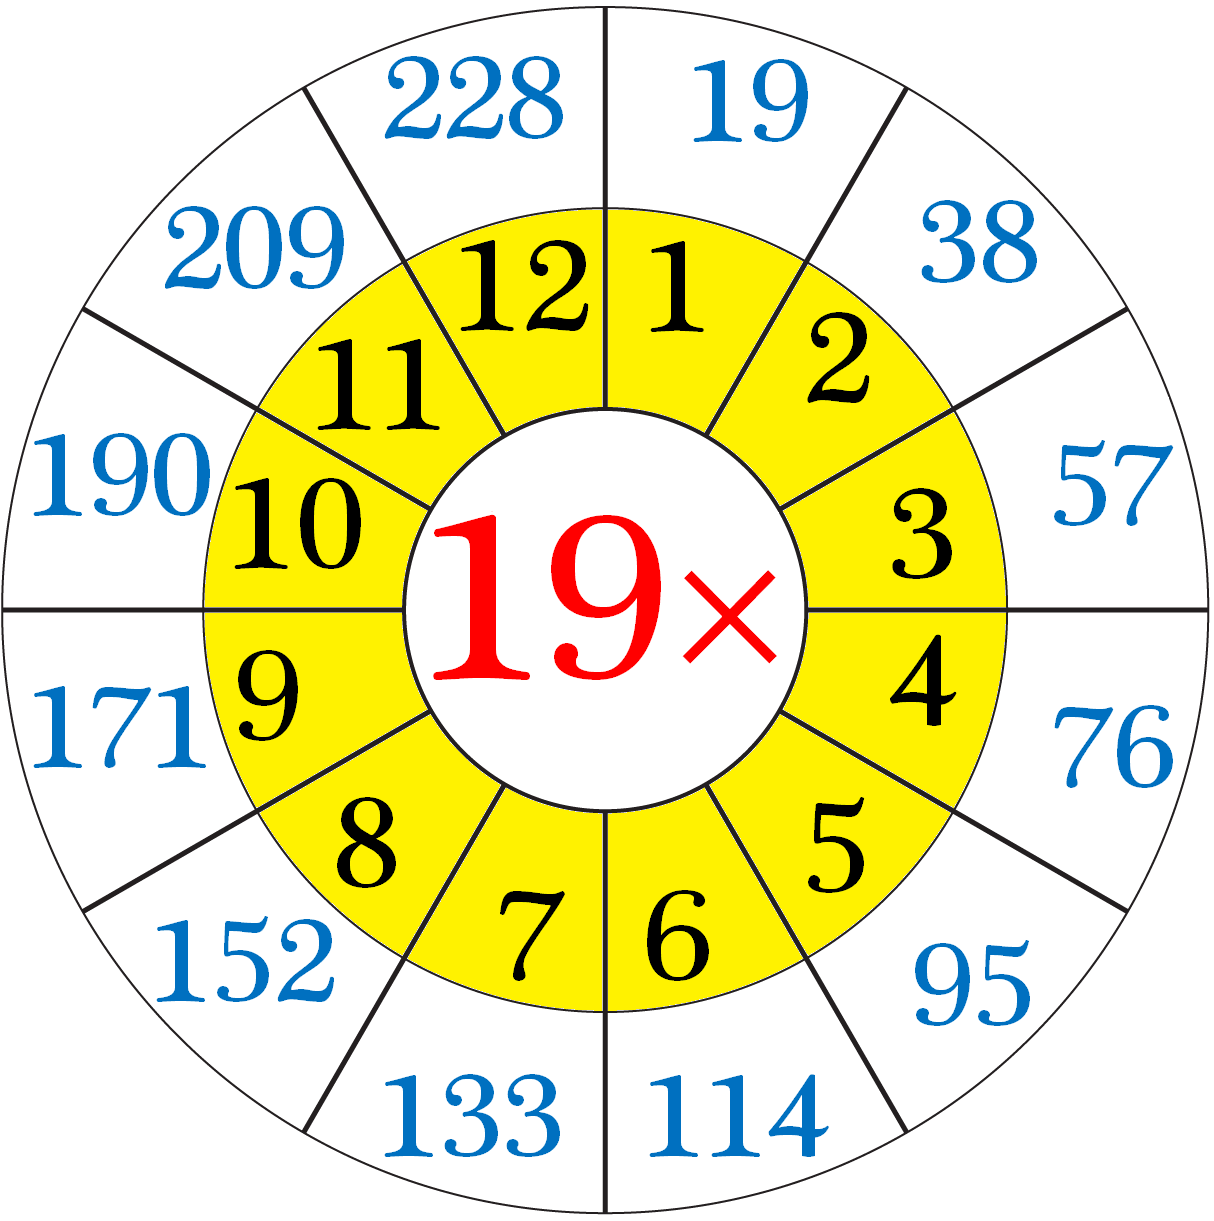 Multiplication Table of 19